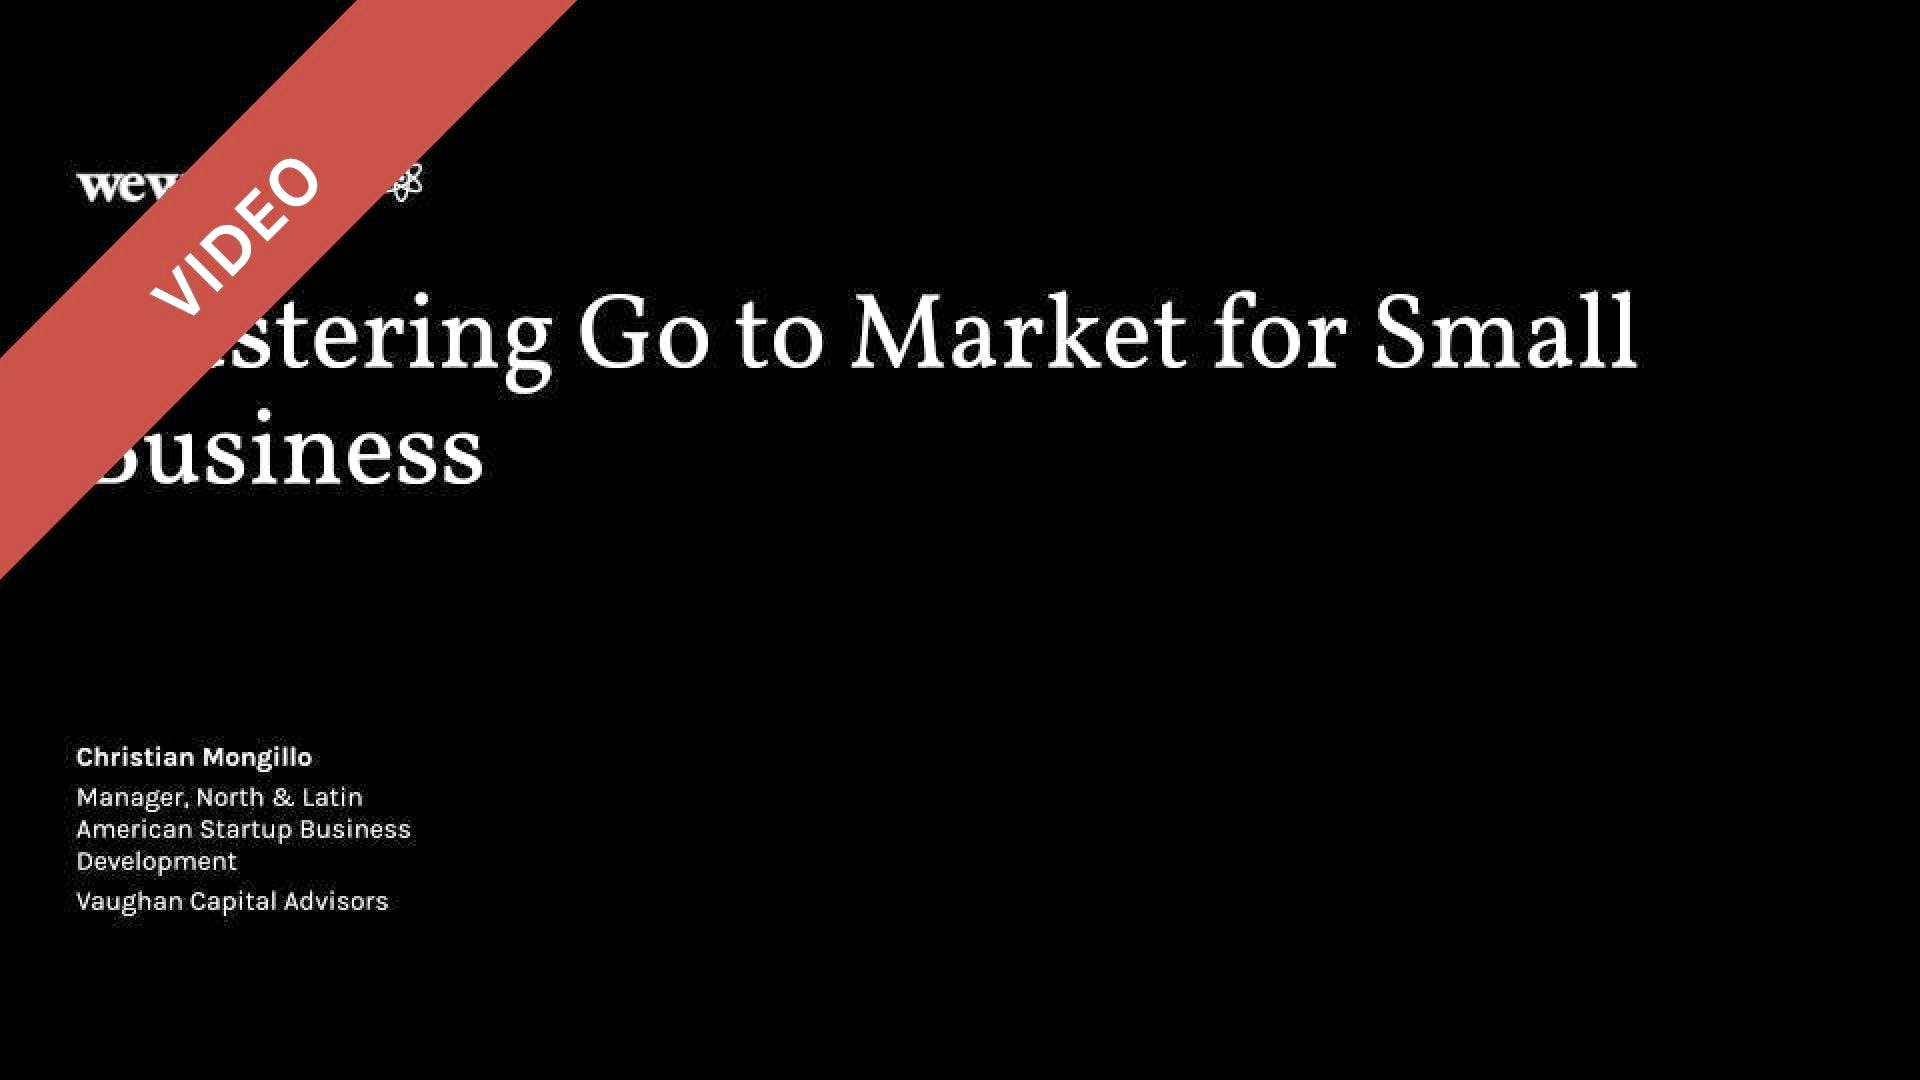 Mastering Go to Market for Small Business